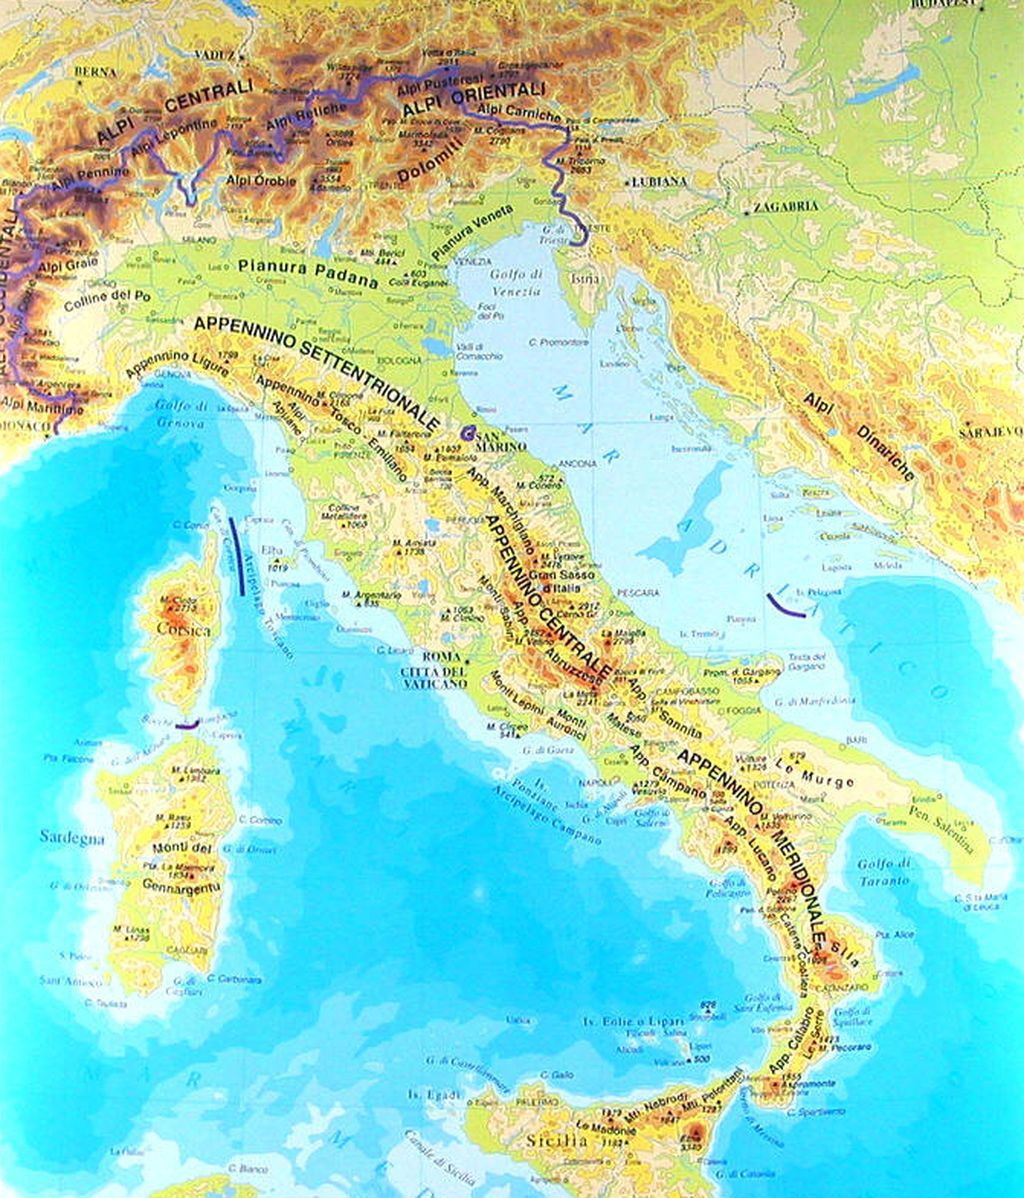 italy-map-in-italian-edi443-2